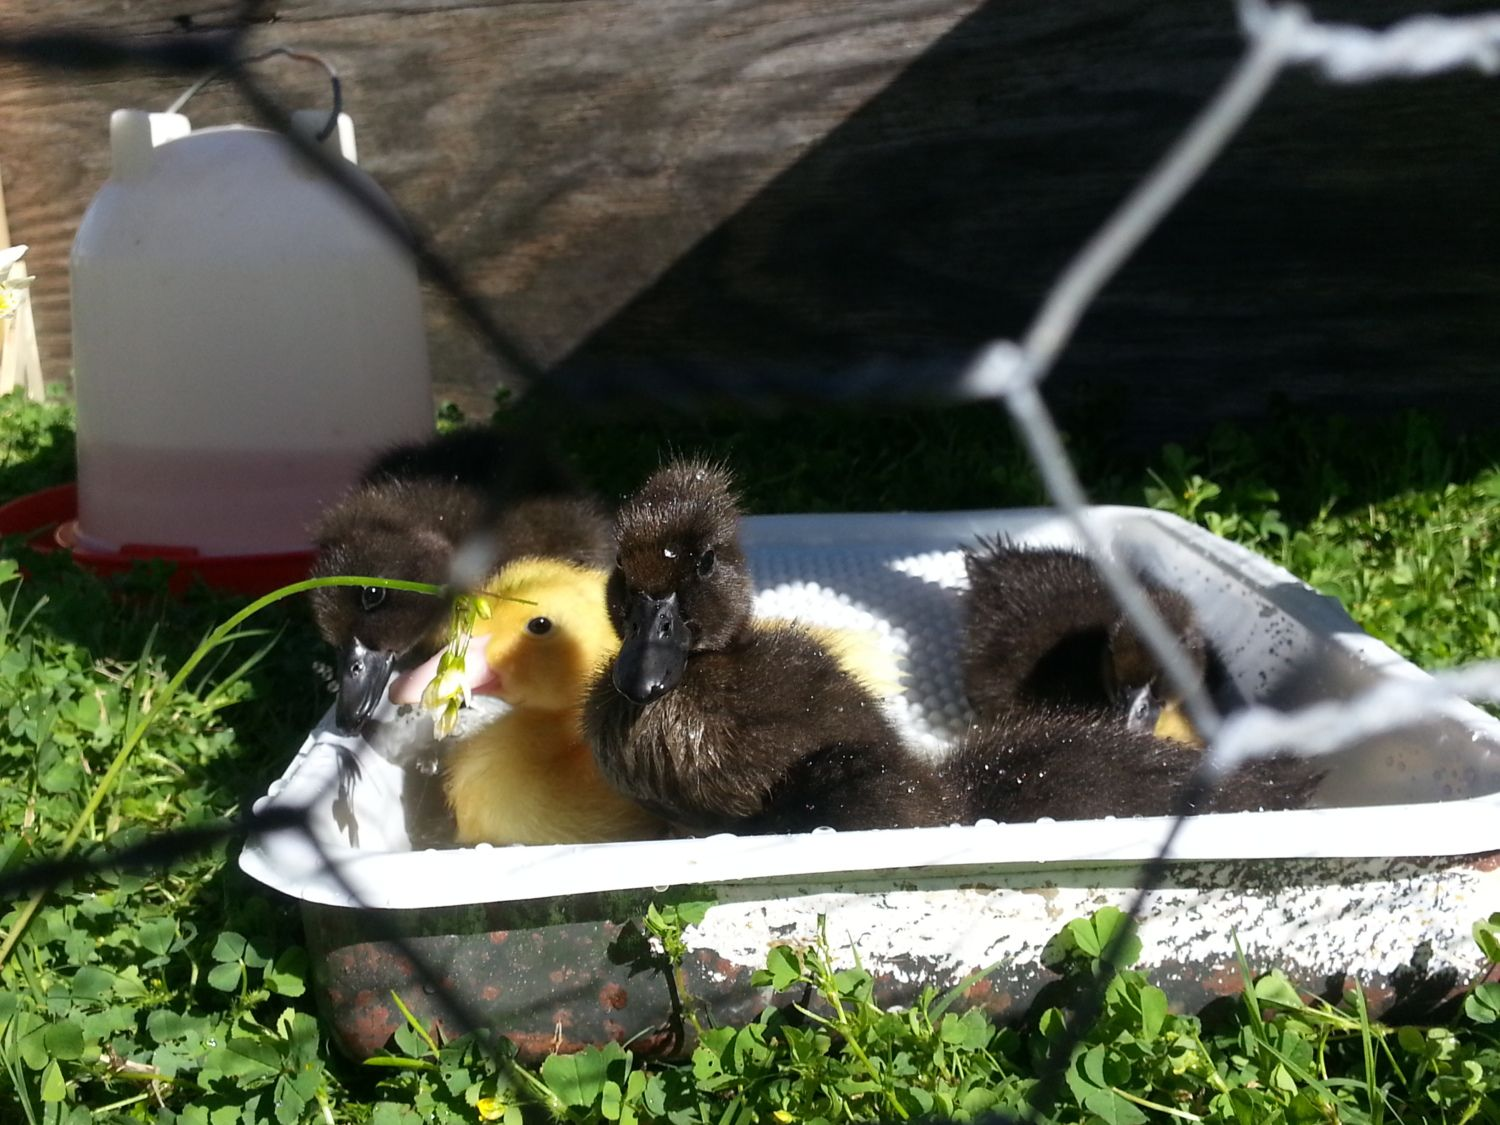 First day in the sun with their baby pool!